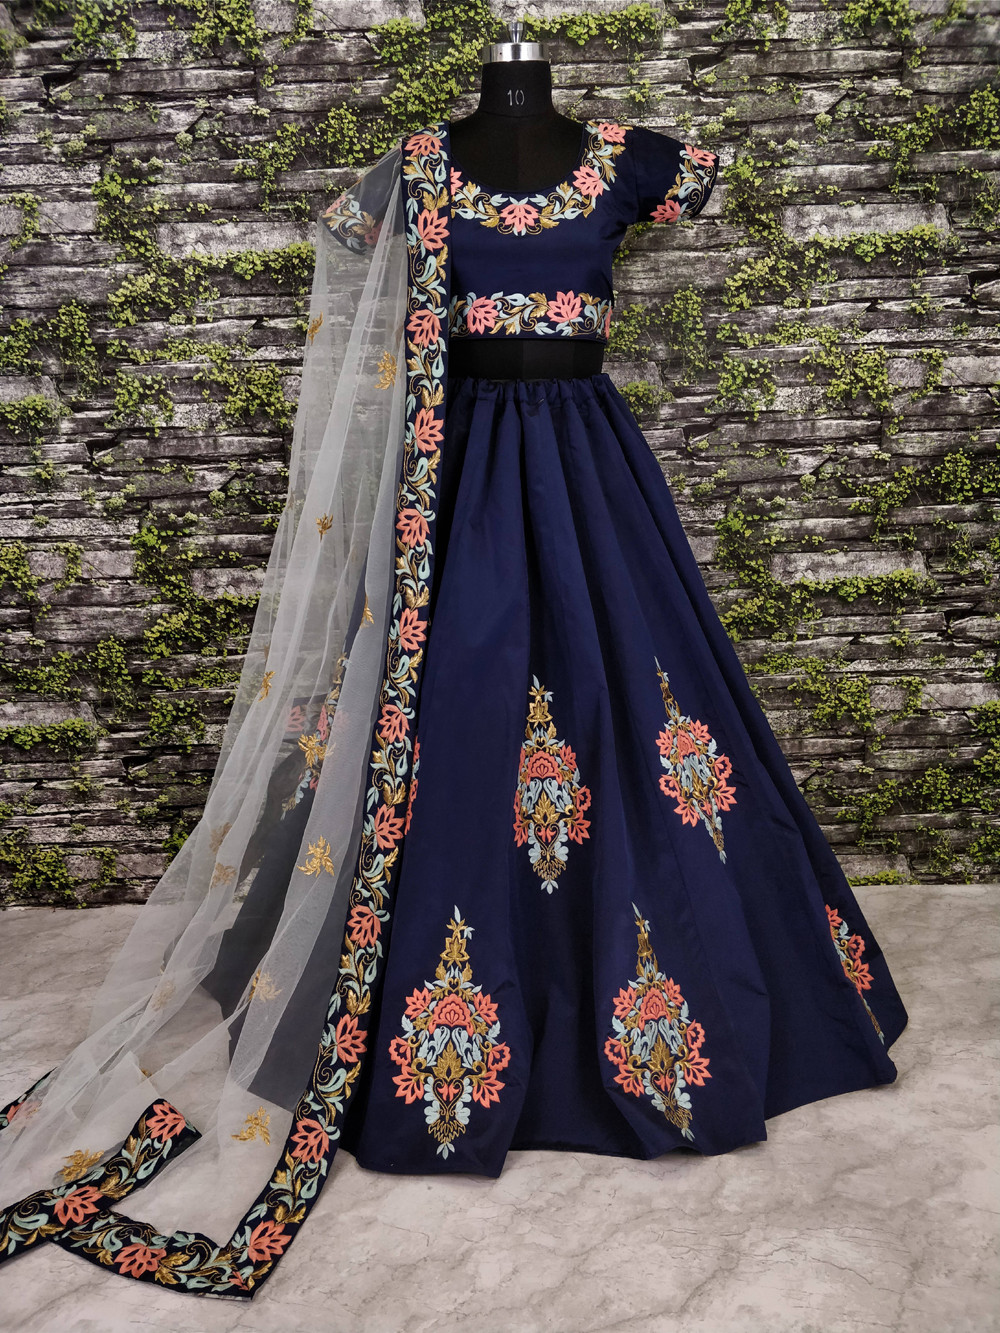 New presenting Navy Blue Color Embroidery Work Lehenga Choli